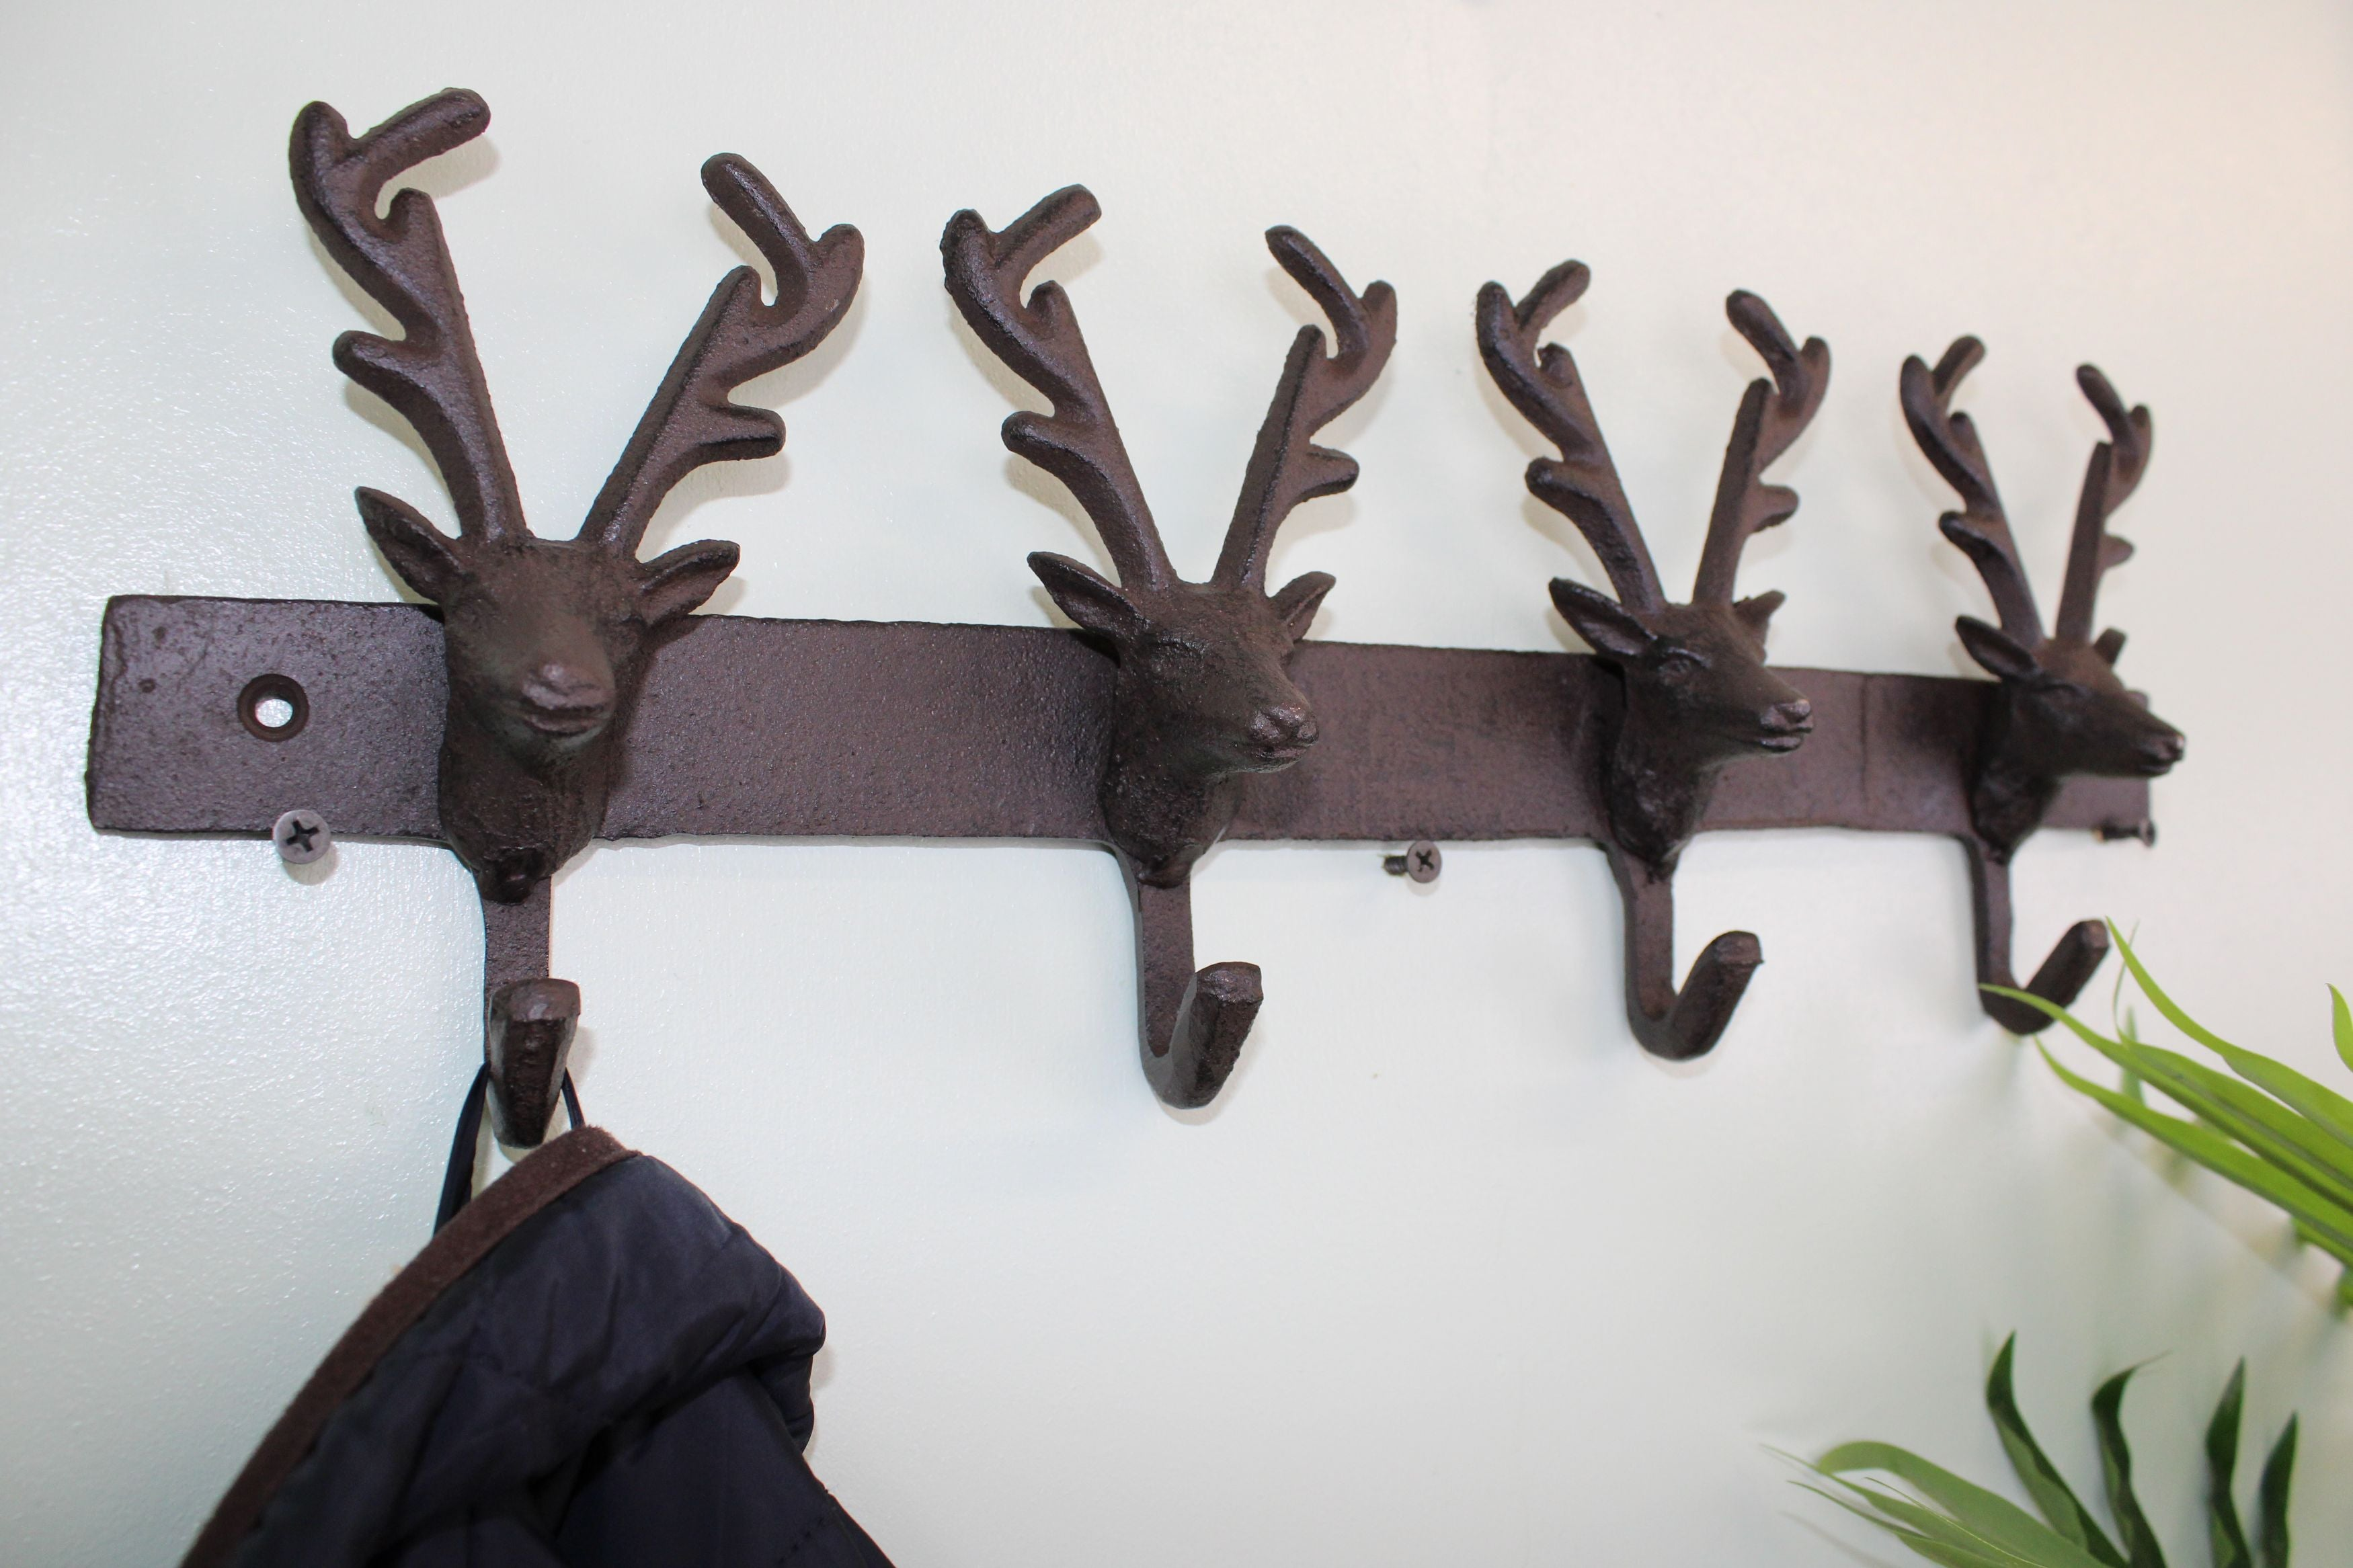 Rustic Cast Iron Wall Hooks, Reindeer, Clasps & Hooks by Low Cost Gifts